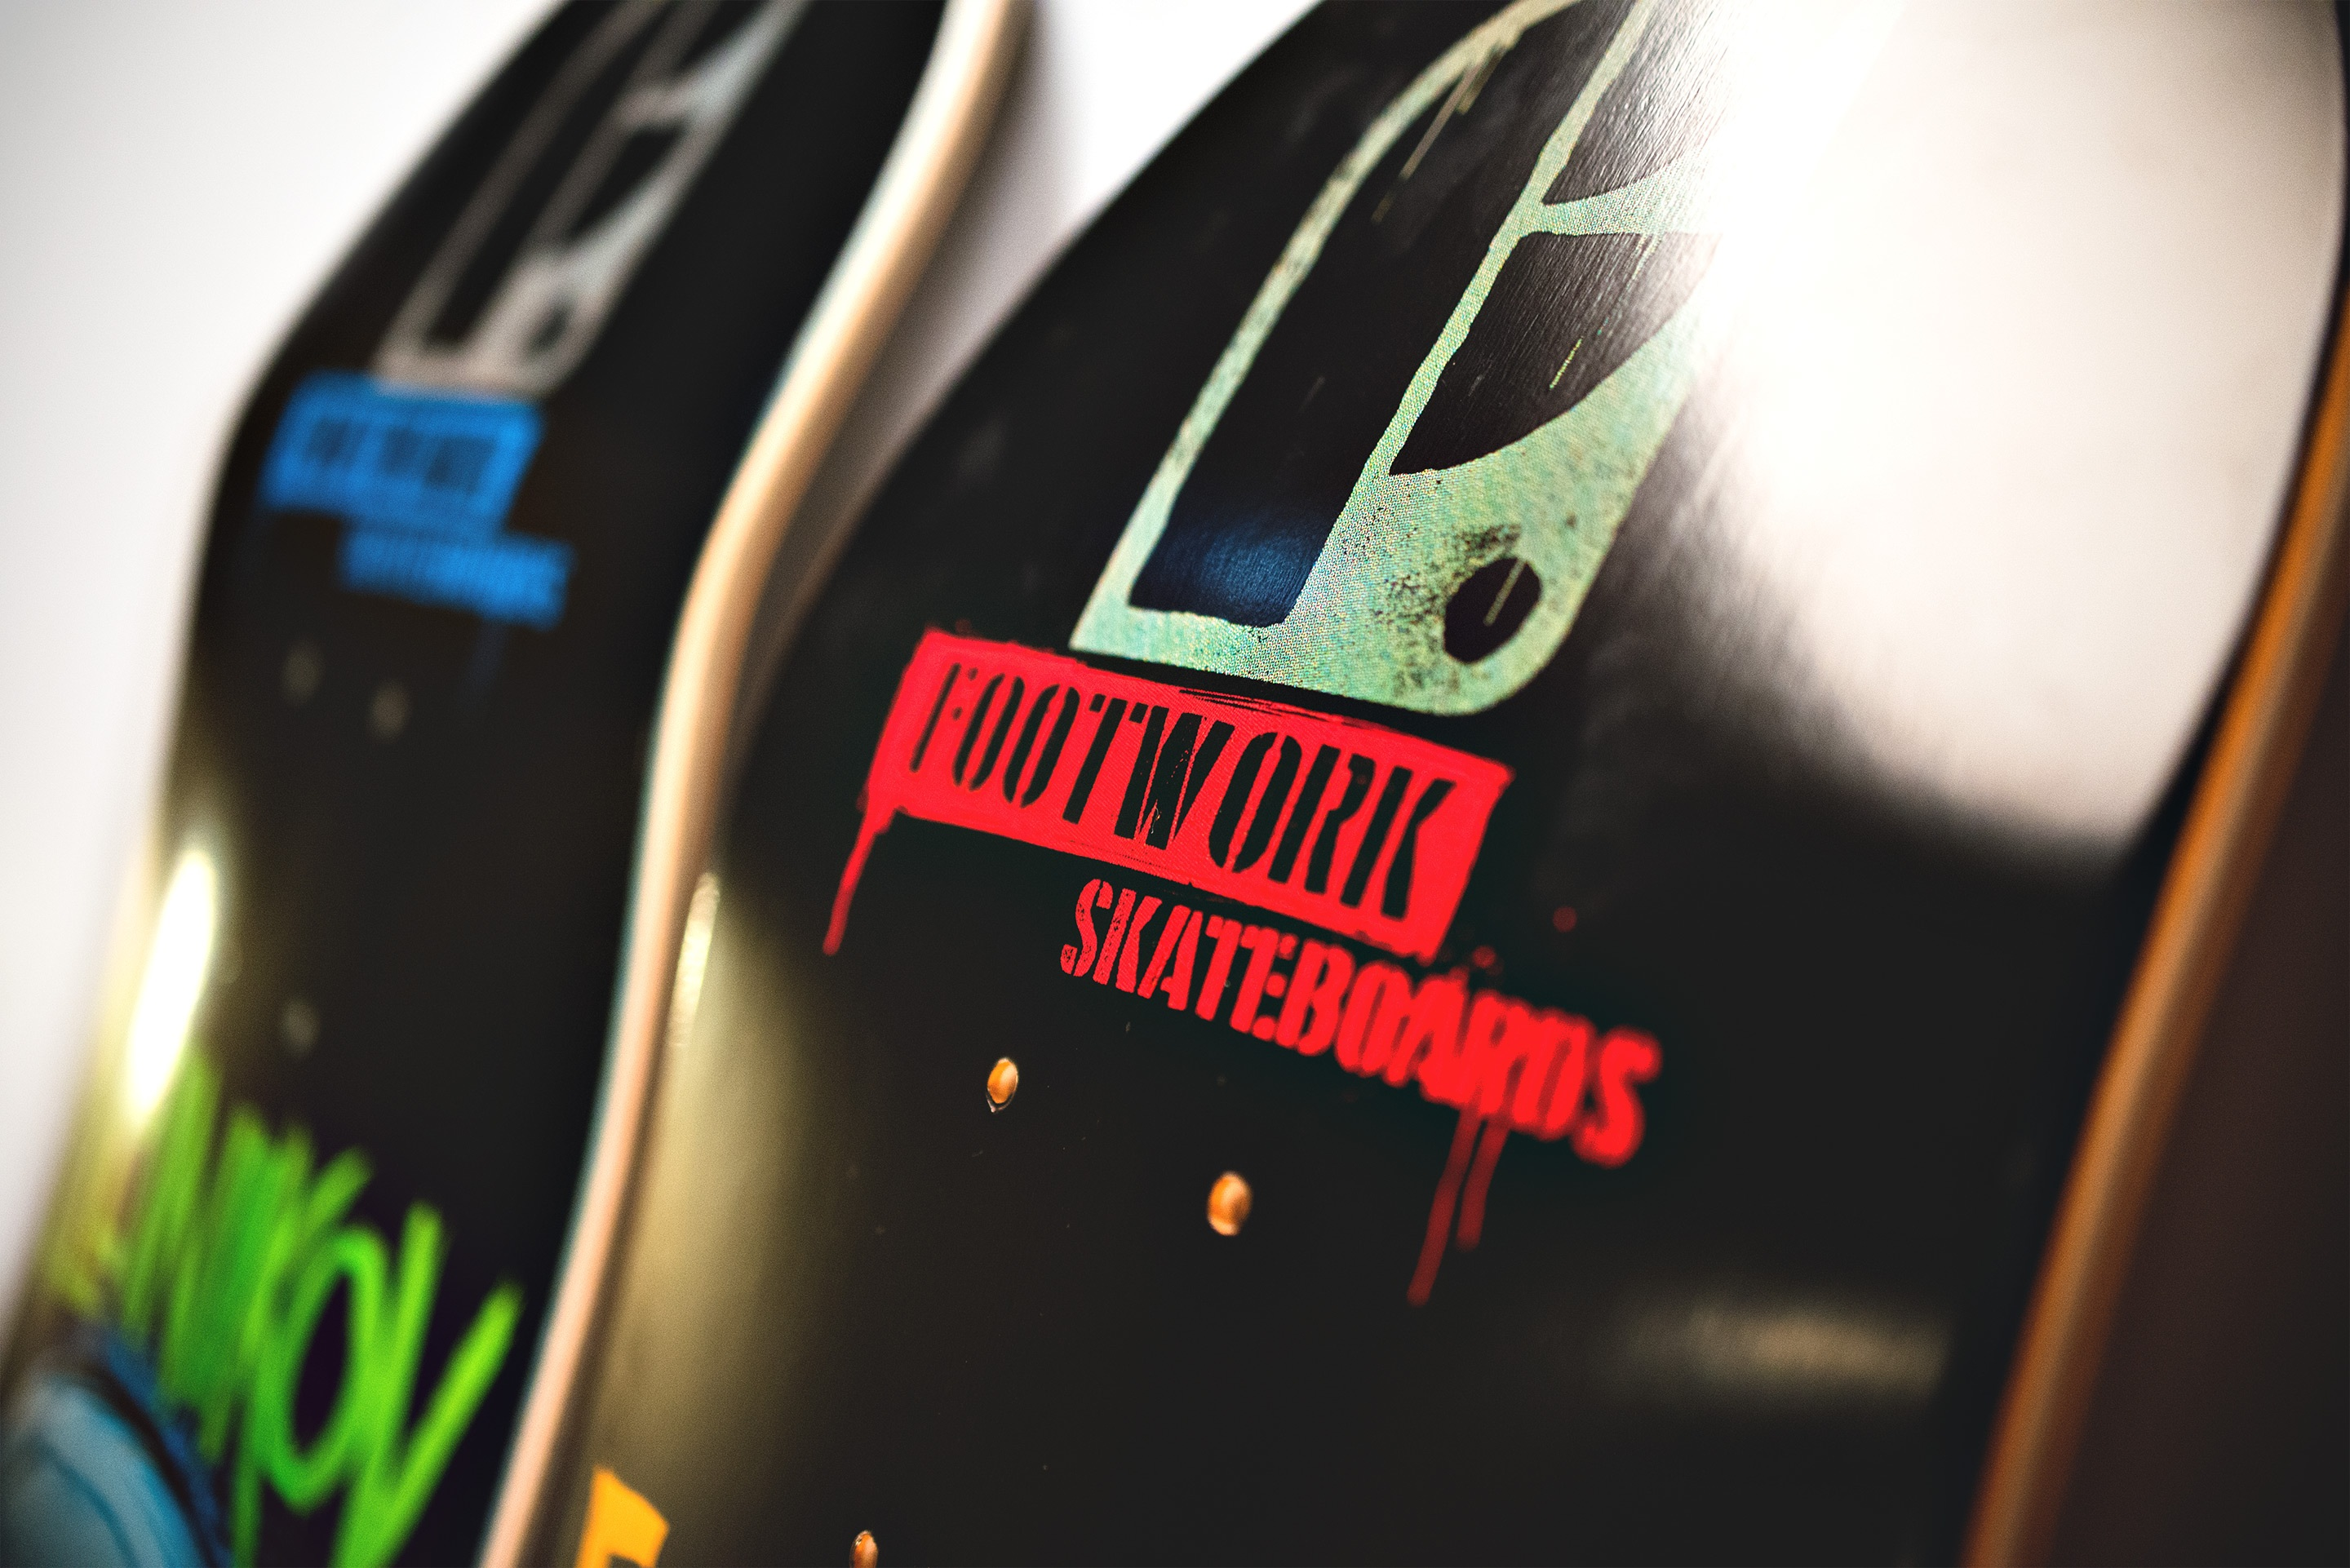 Footwork logo on boards